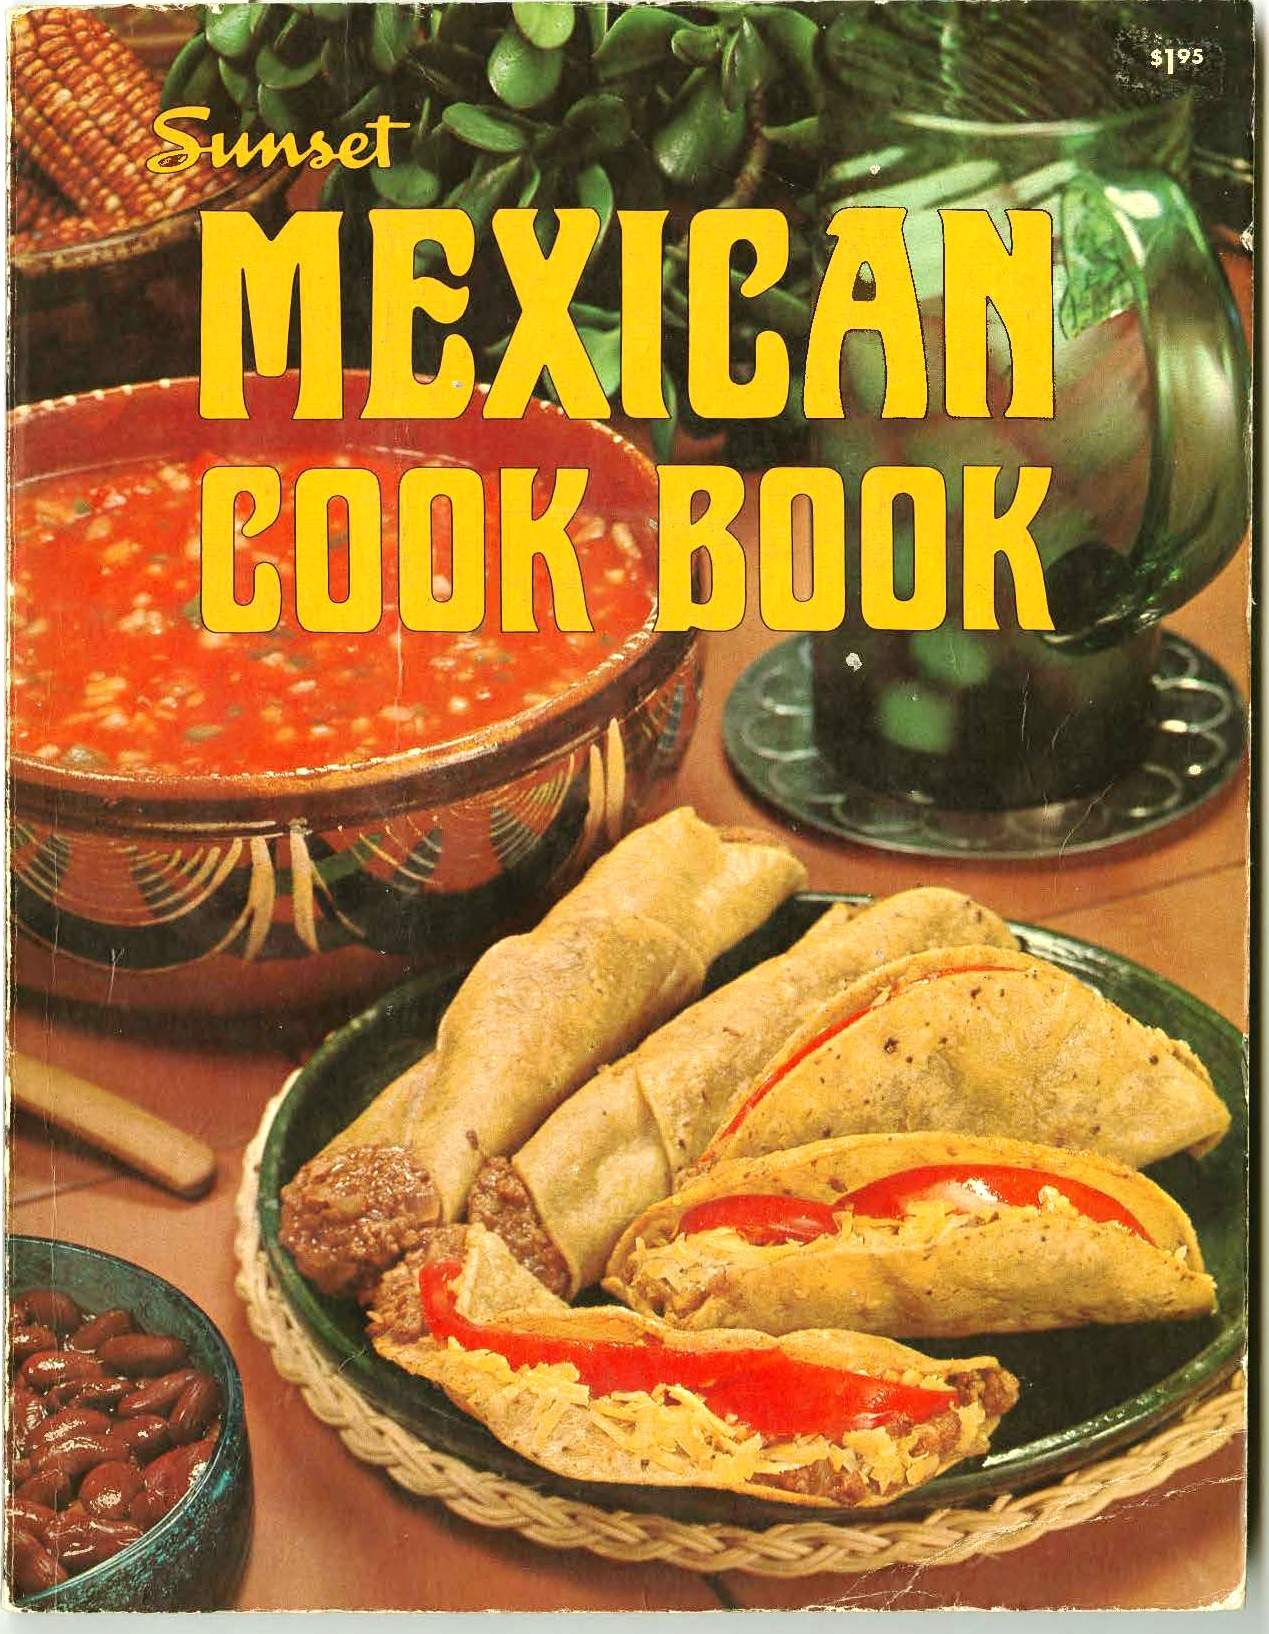 Sunset mexican cookbook 1969 flautas mexican cookbook sunset mexican cookbook 1969 flautas i have this book and love it forumfinder Gallery